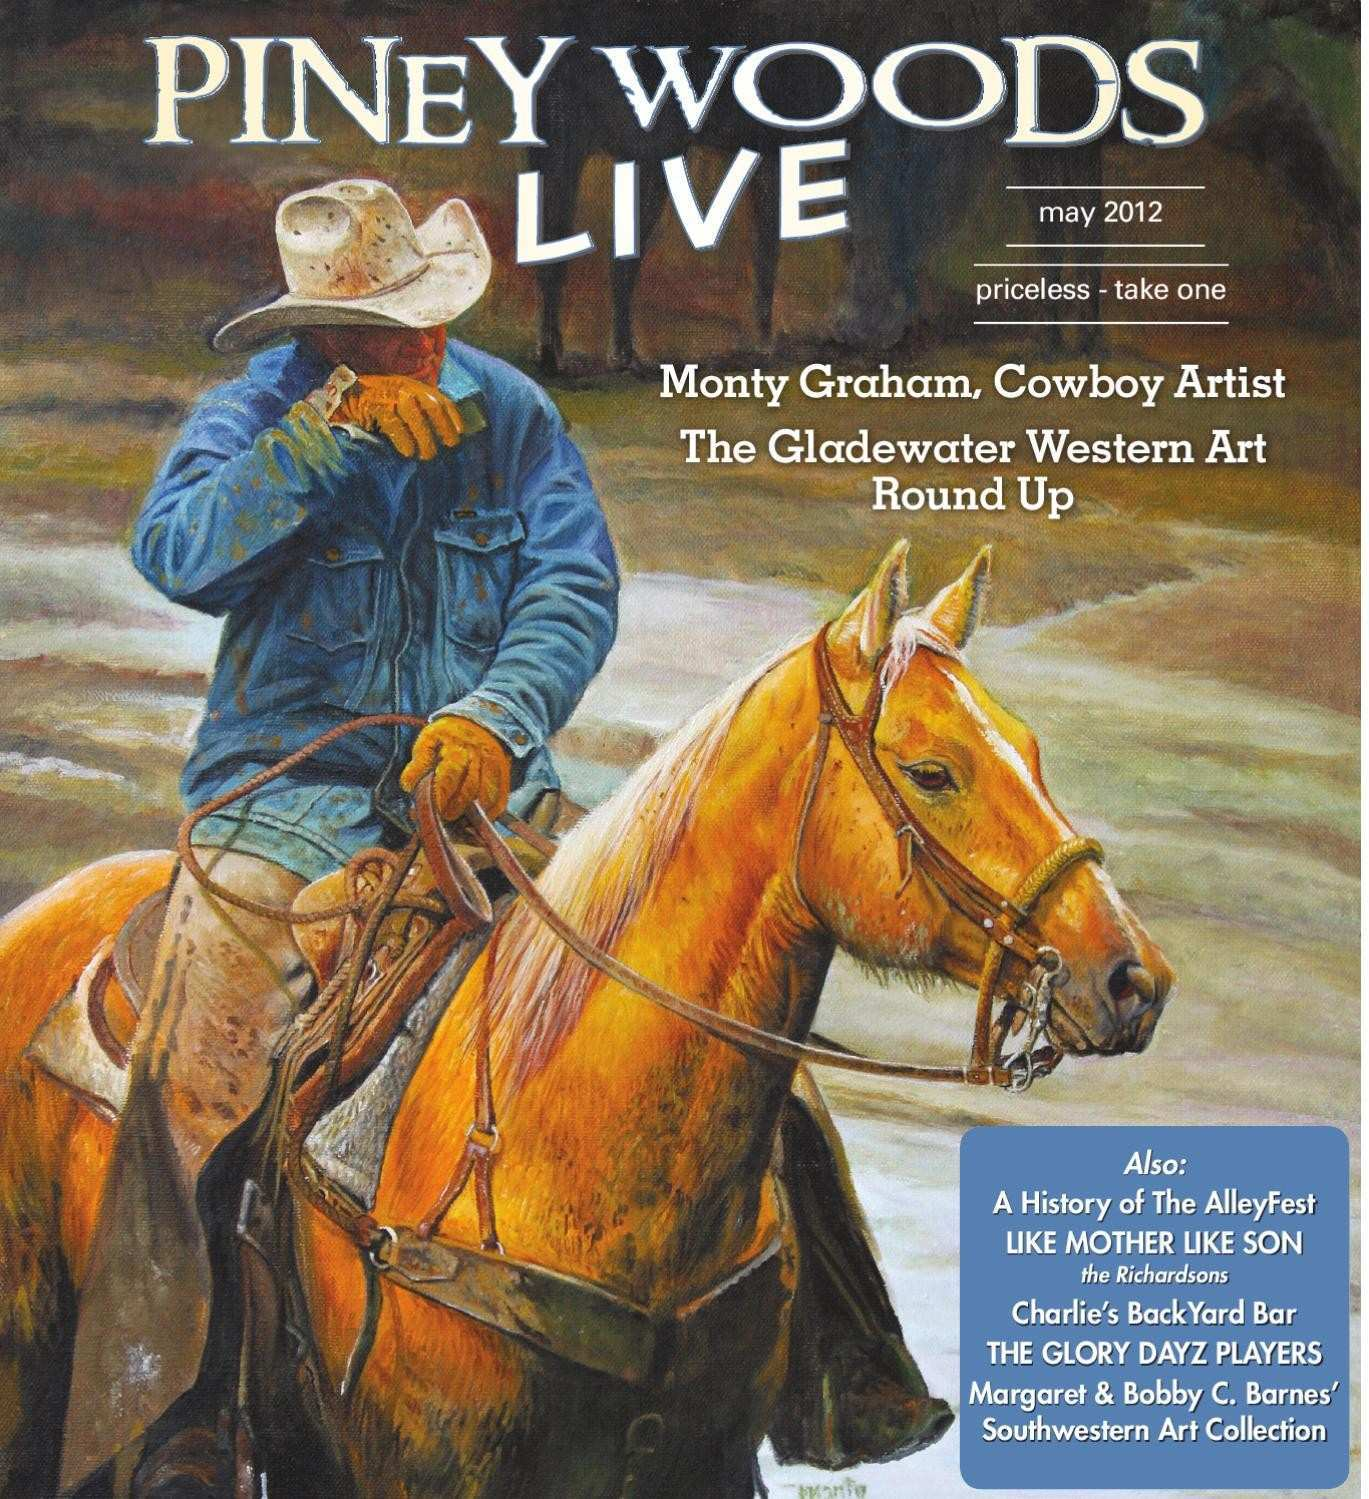 Piney Woods Live May 2012 by Piney Woods Live Magazine issuu